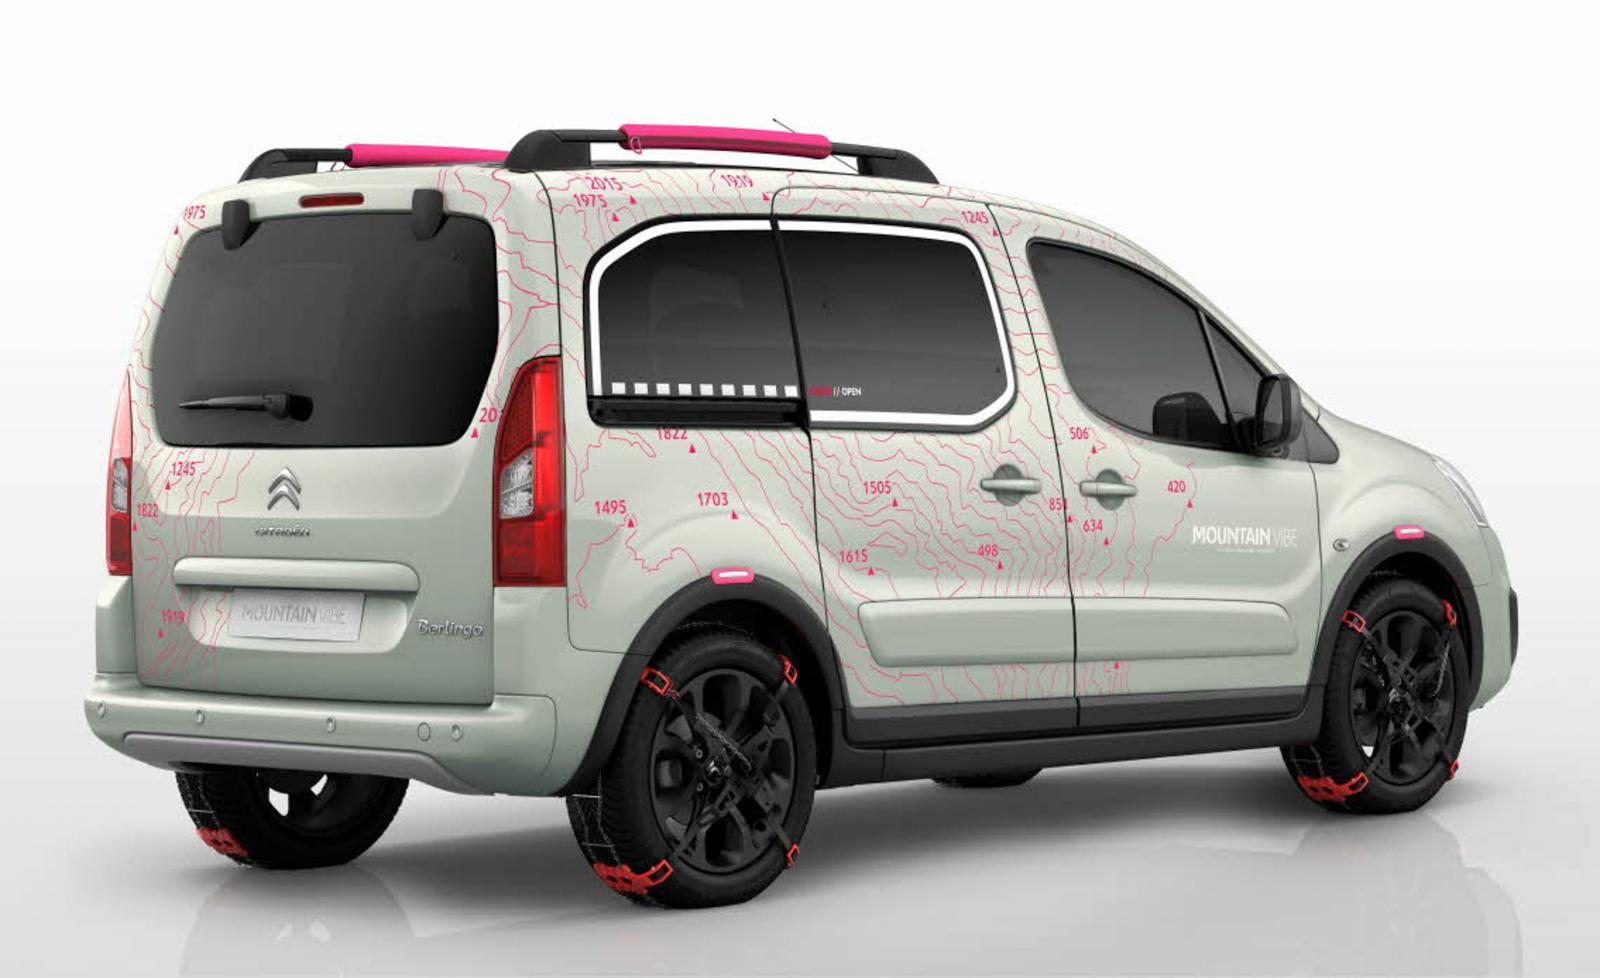 Berlingo Mountain Vibe 2015 rear 3/4